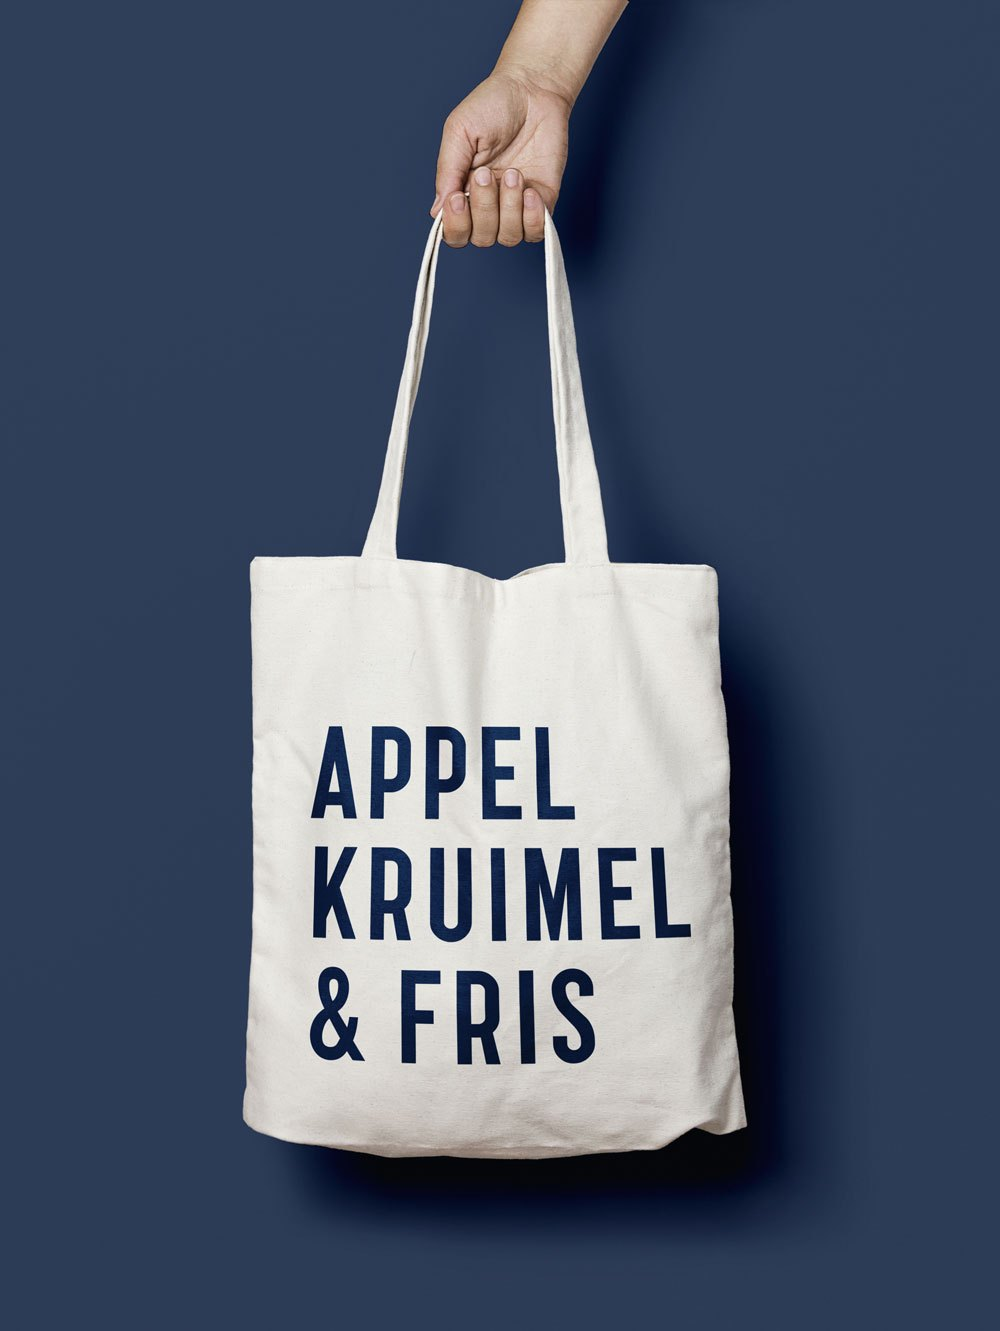 Tas – Linnen from AppelKruimel&Fris